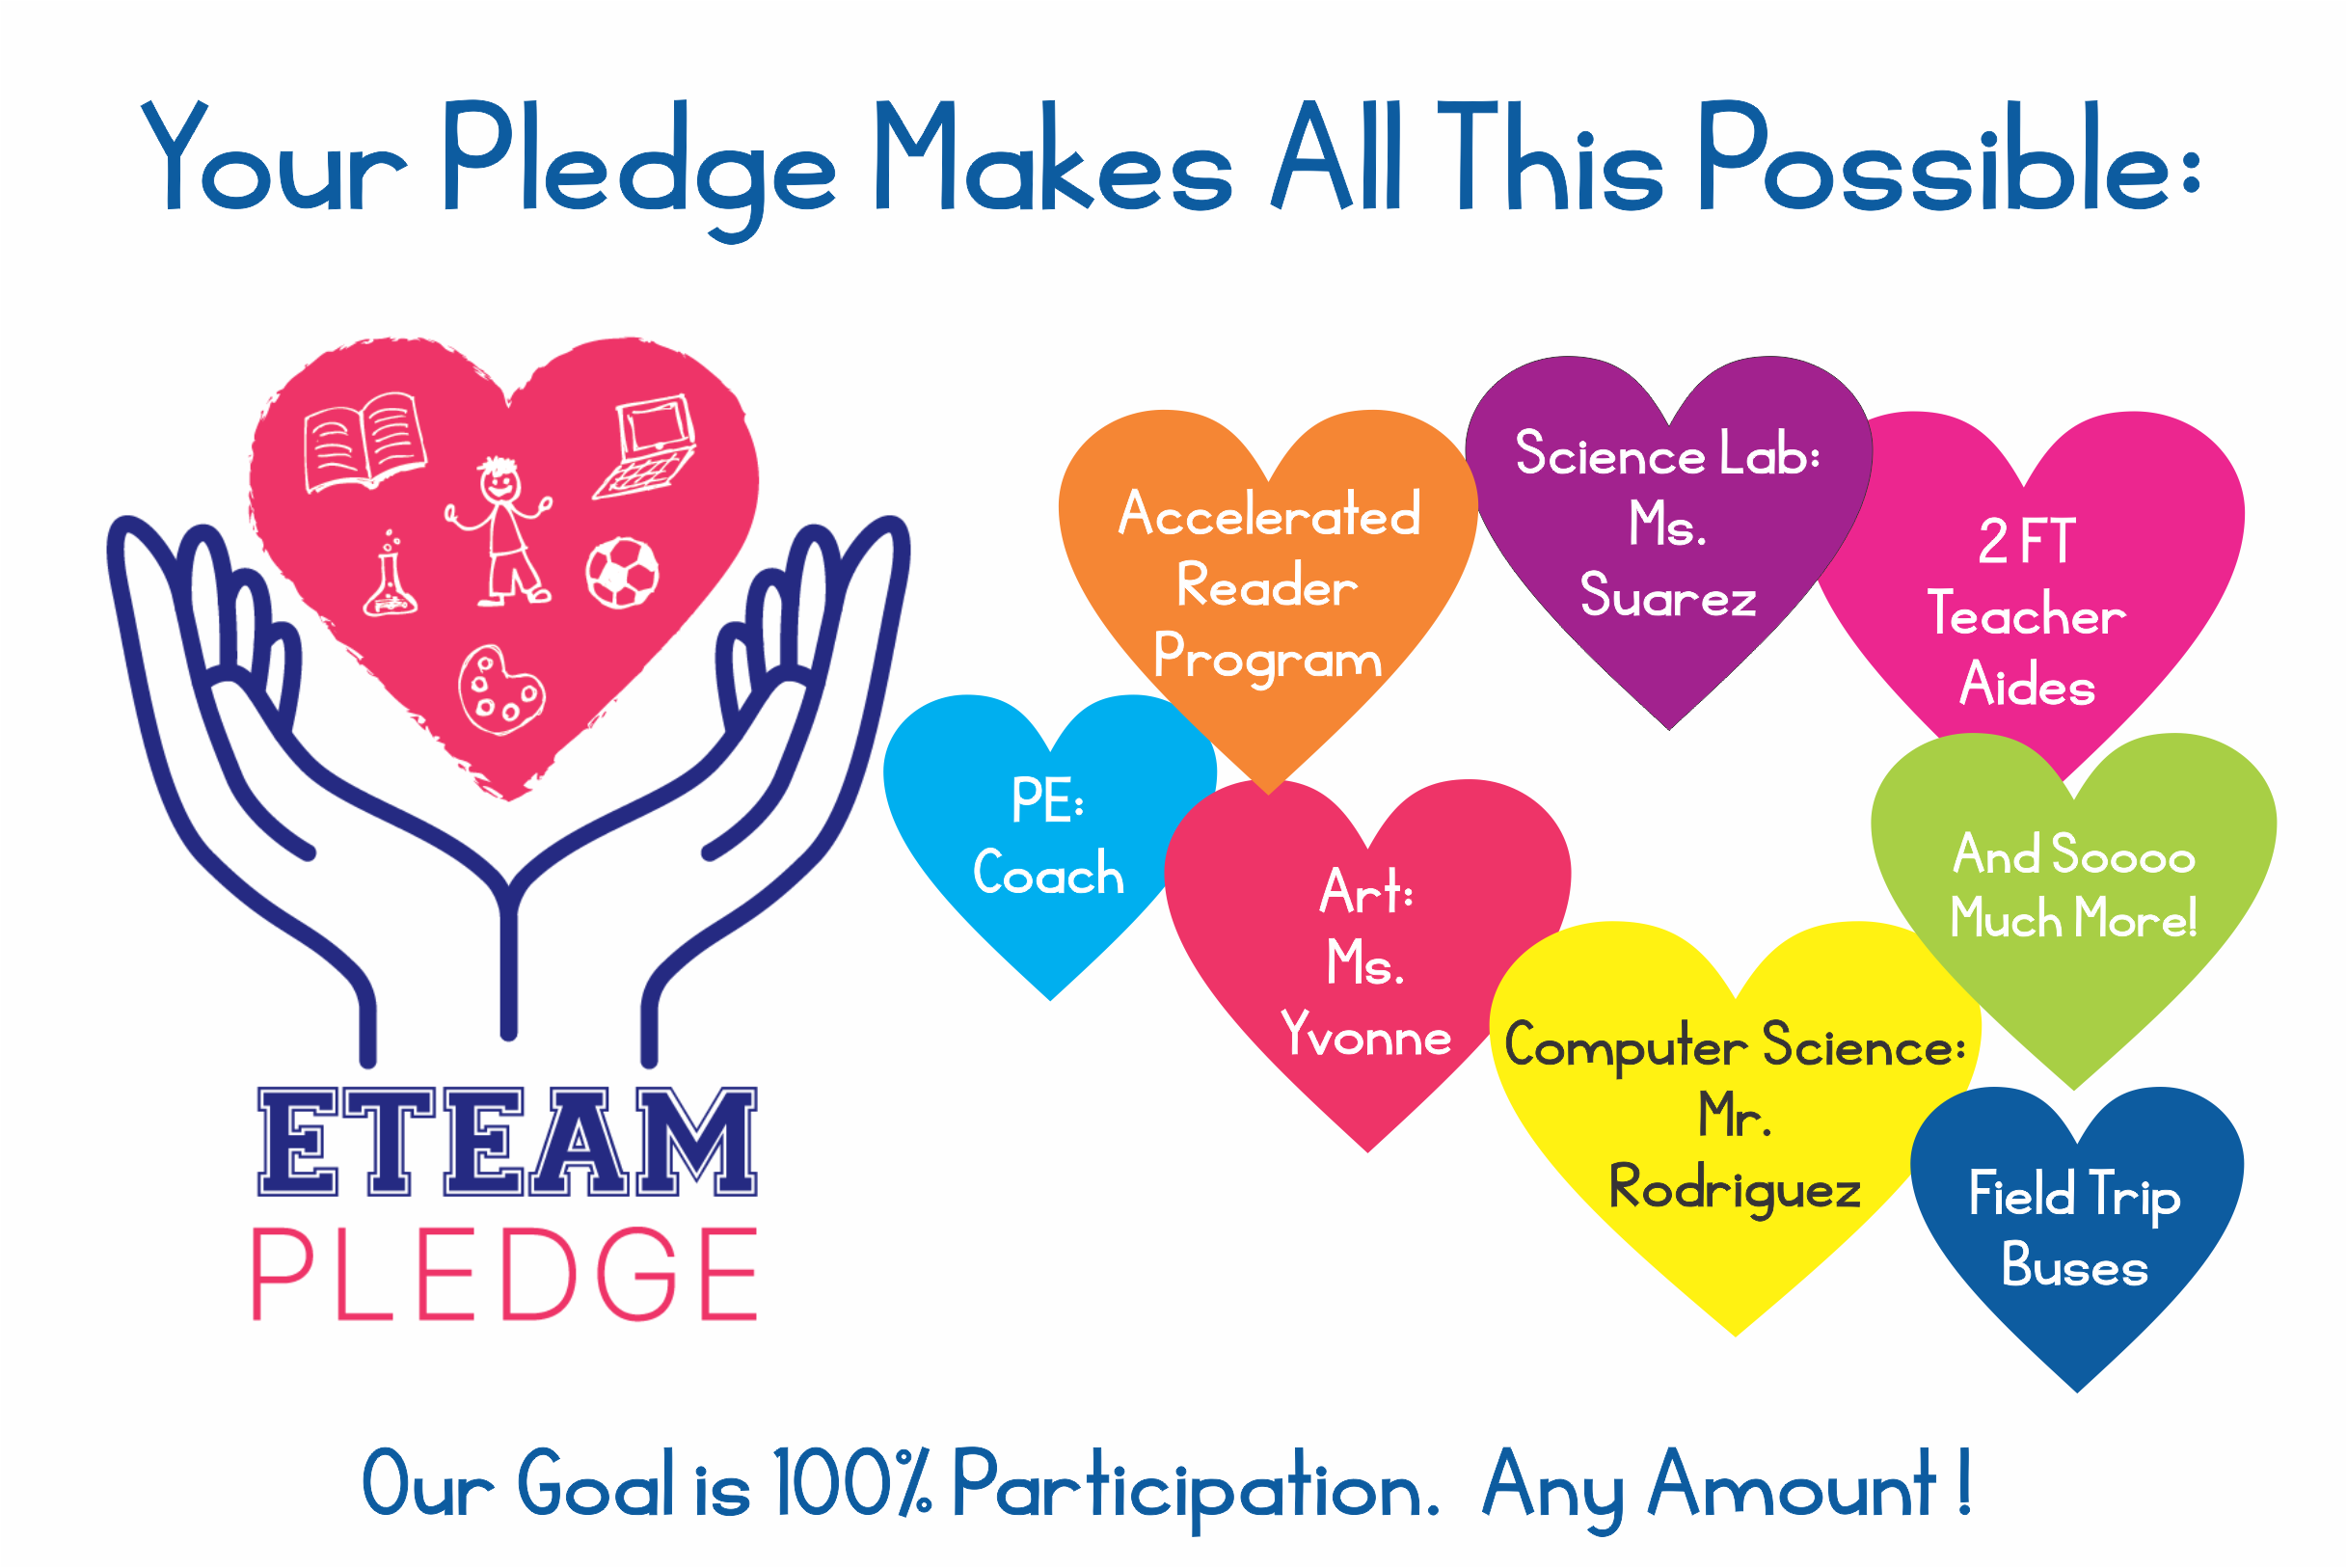 E-Team Pledge